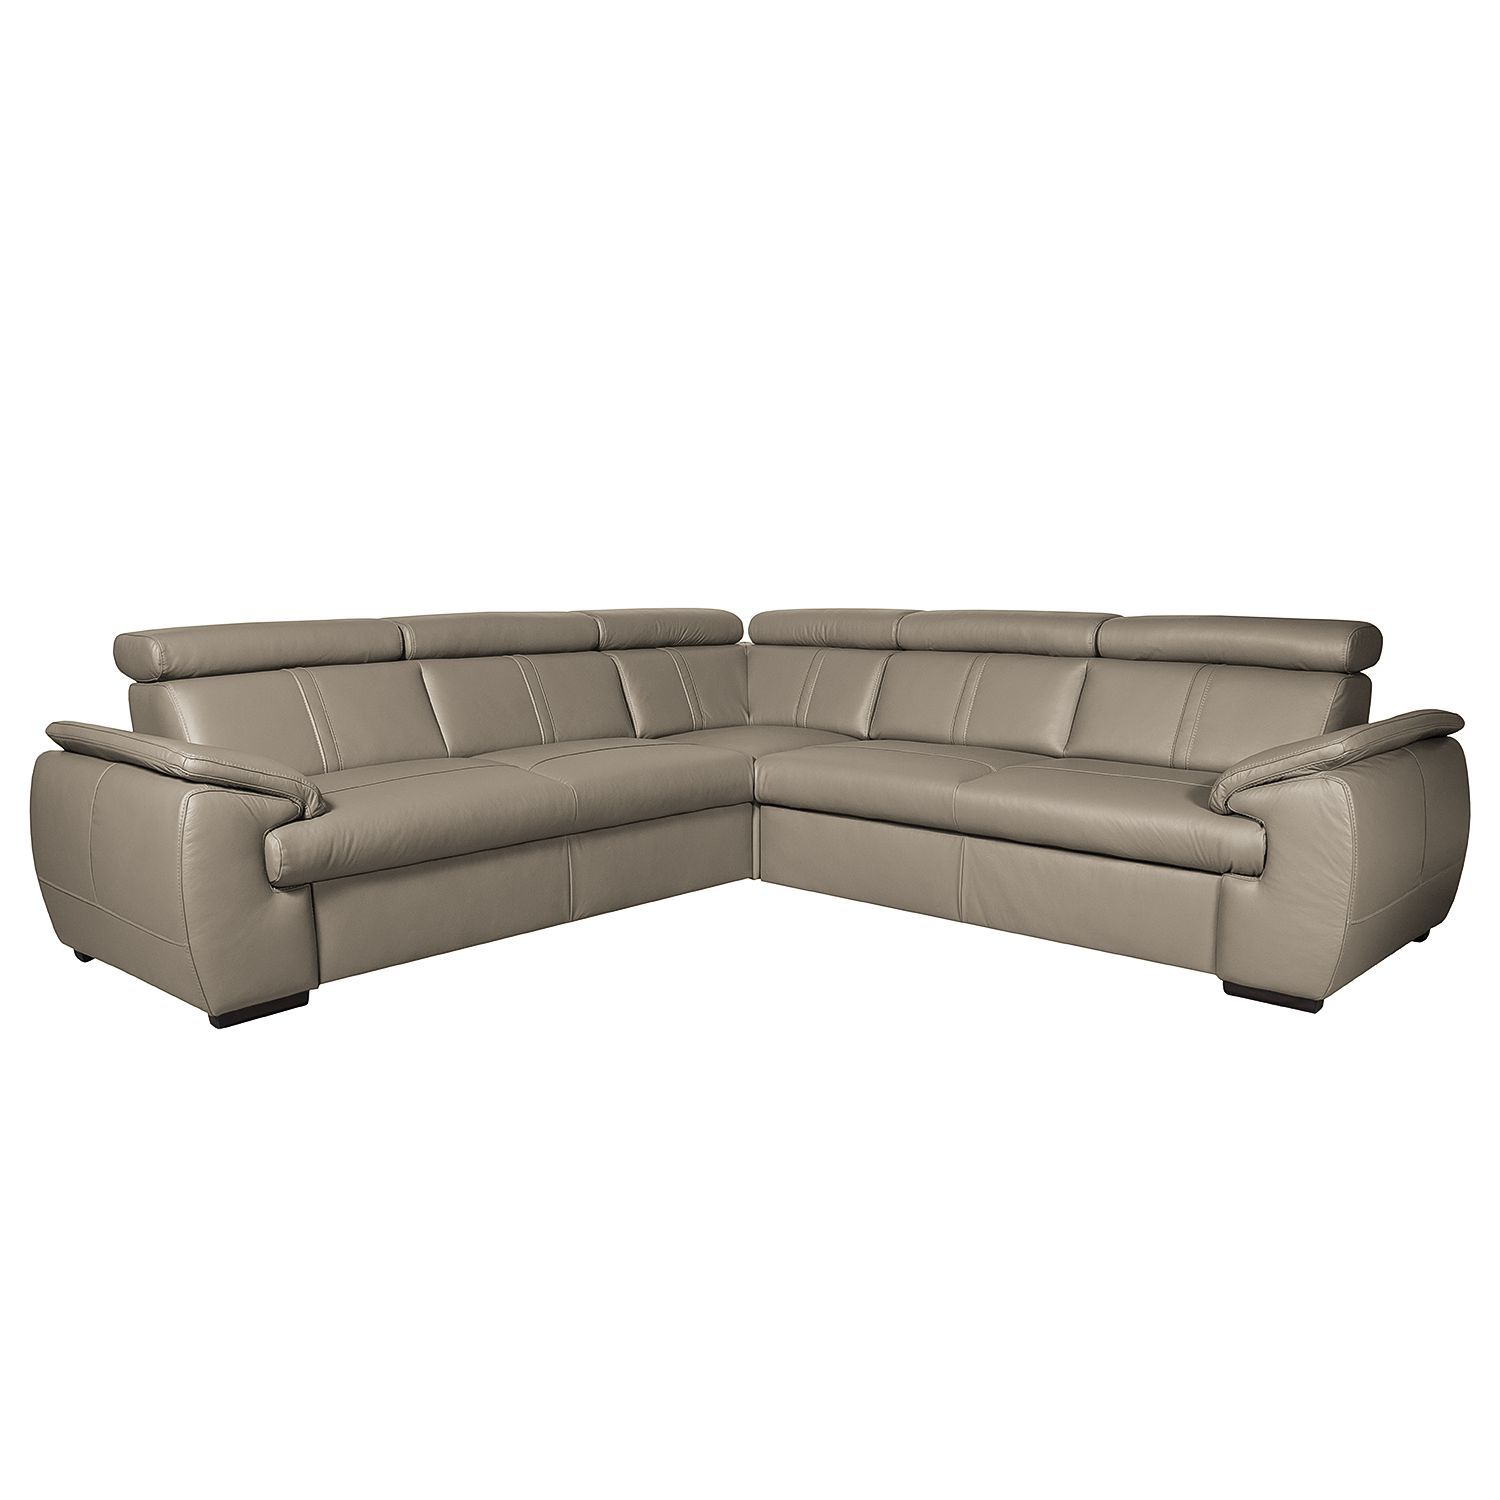 Design Sofa Online Kaufen Ecksofa Mit Schlaffunktion Gunstig Chesterfield Sofa Company Reviews Schlafsofa Gunstig Kaufen Roller In 2020 Ecksofas Sofa Loftscape